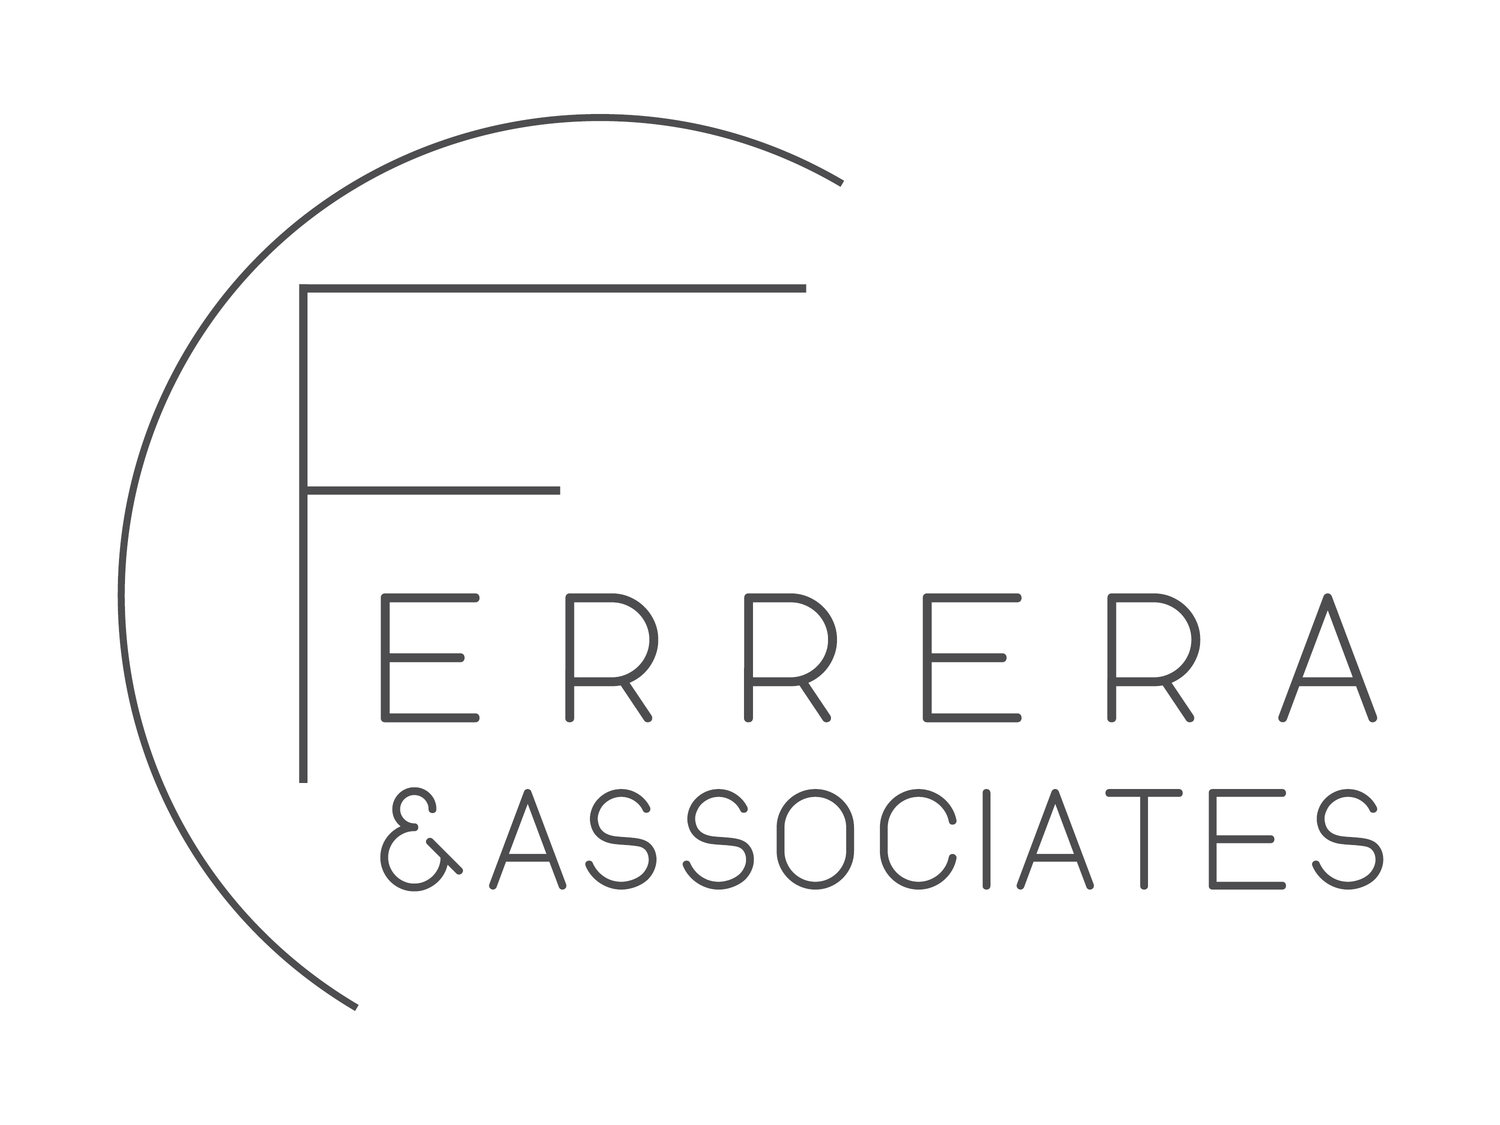 Catherine Ferrera and Associates